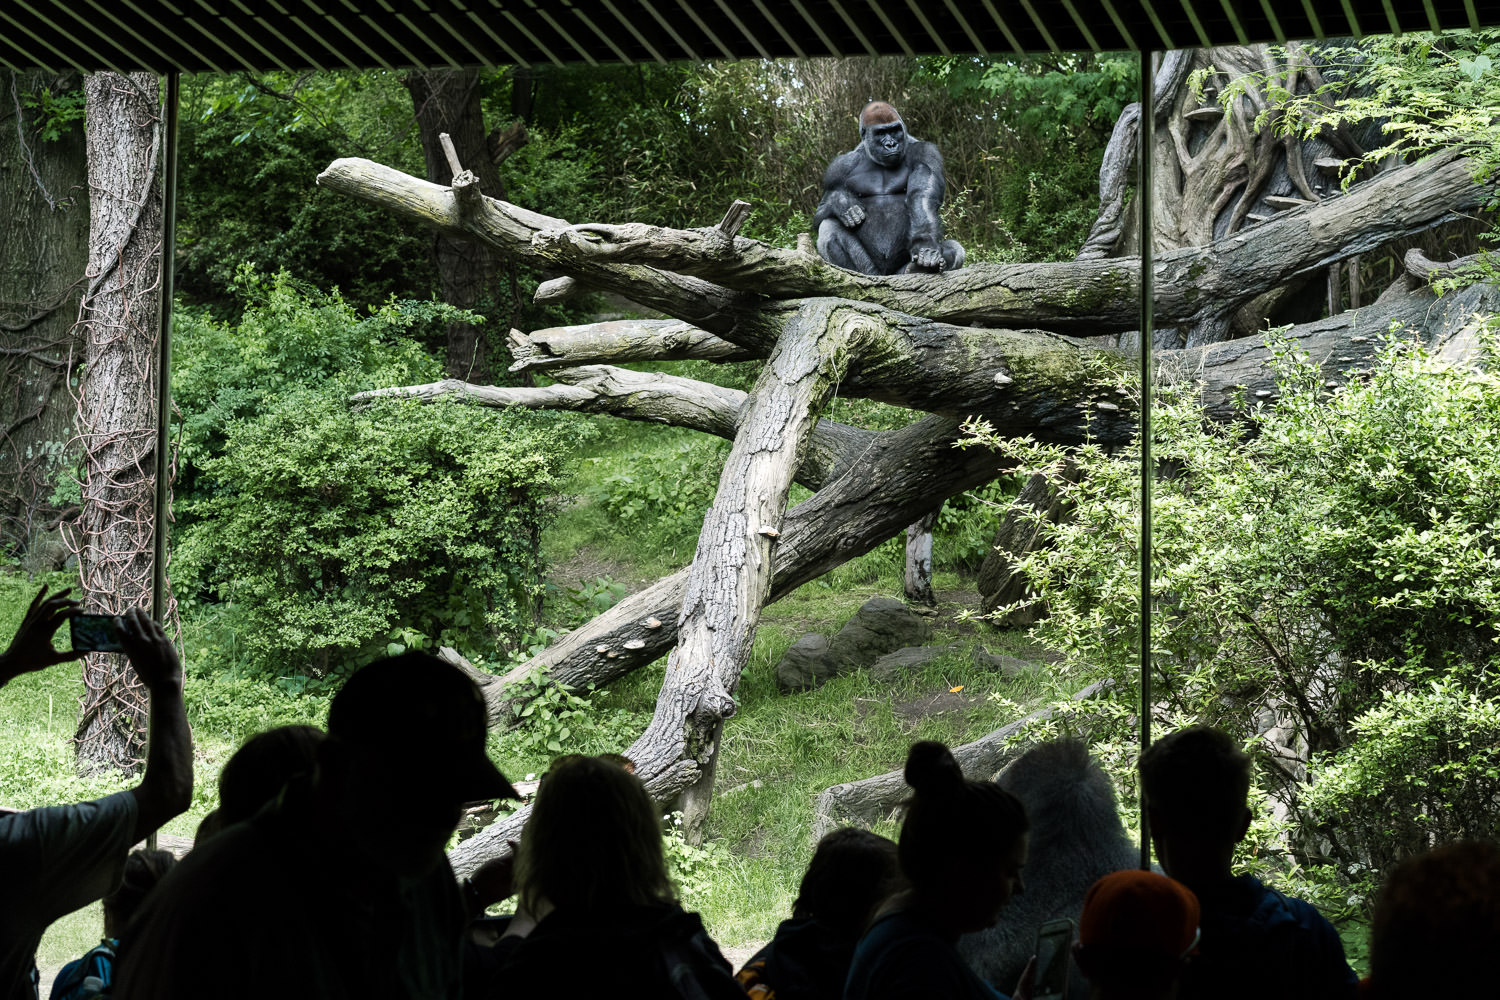 The gorilla viewing area at the Bronx Zoo.